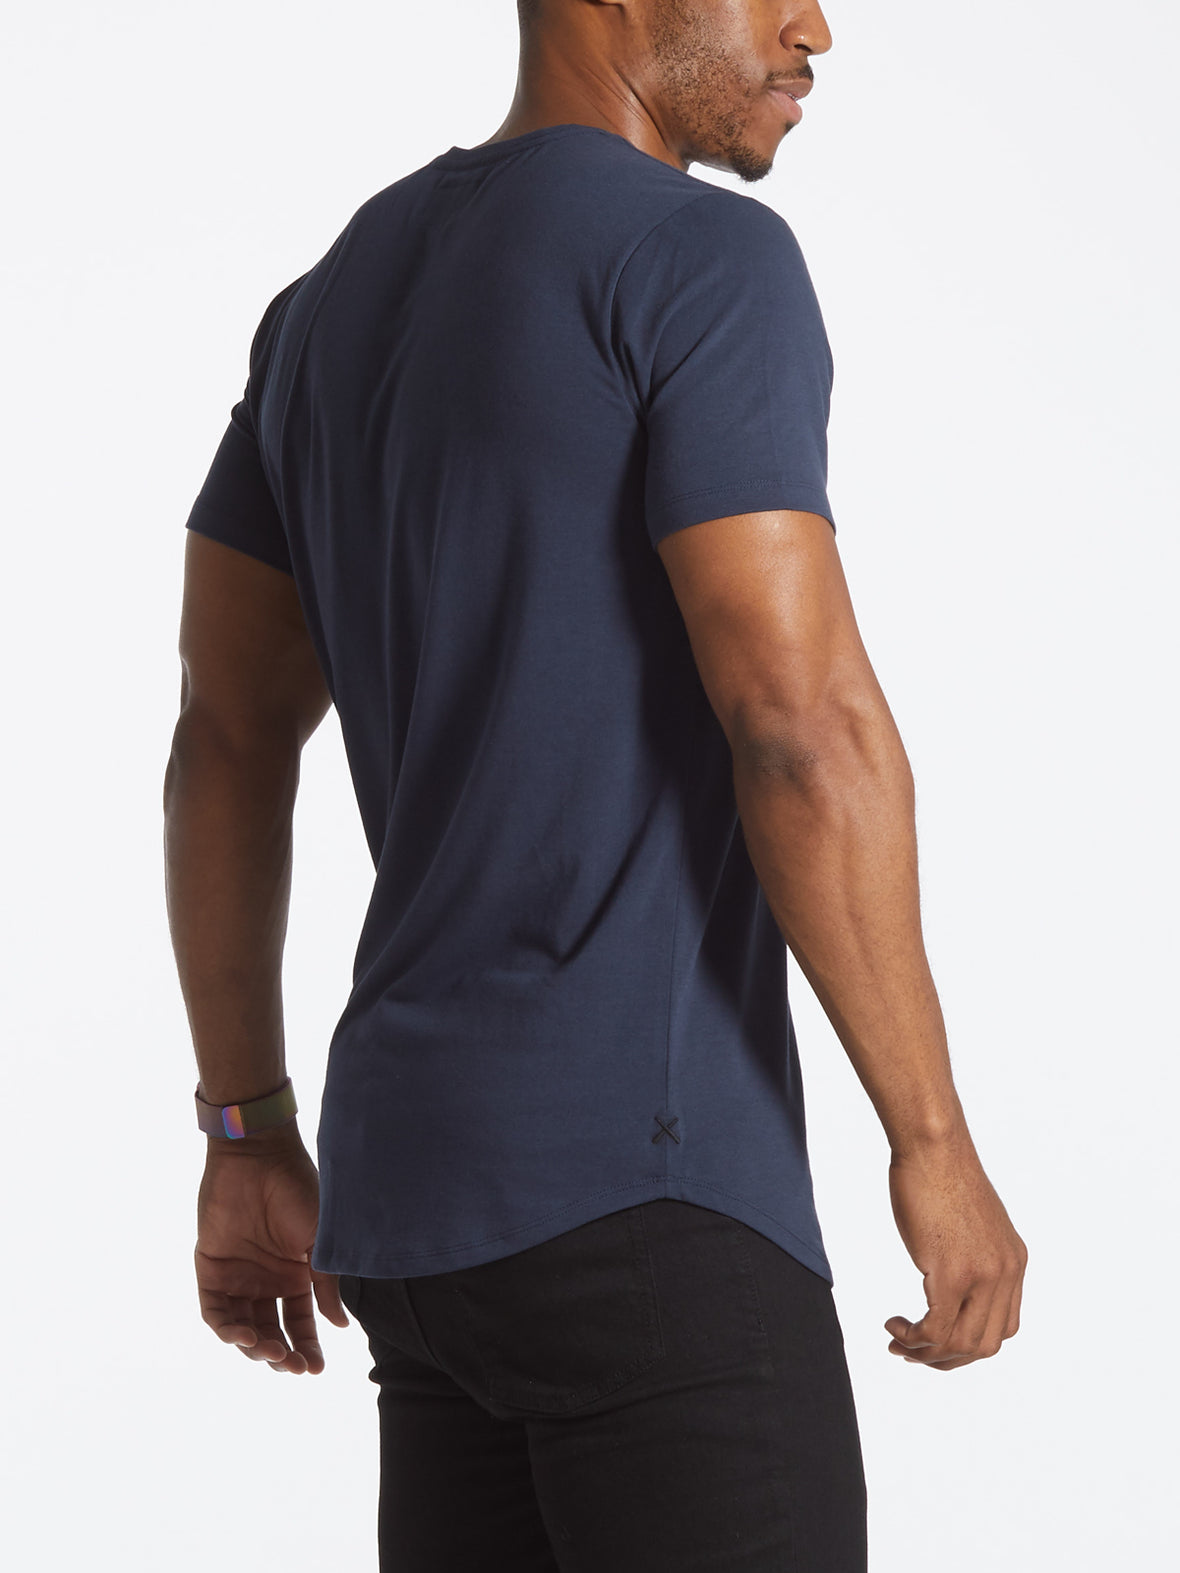 Blue Night V-Neck Elongated